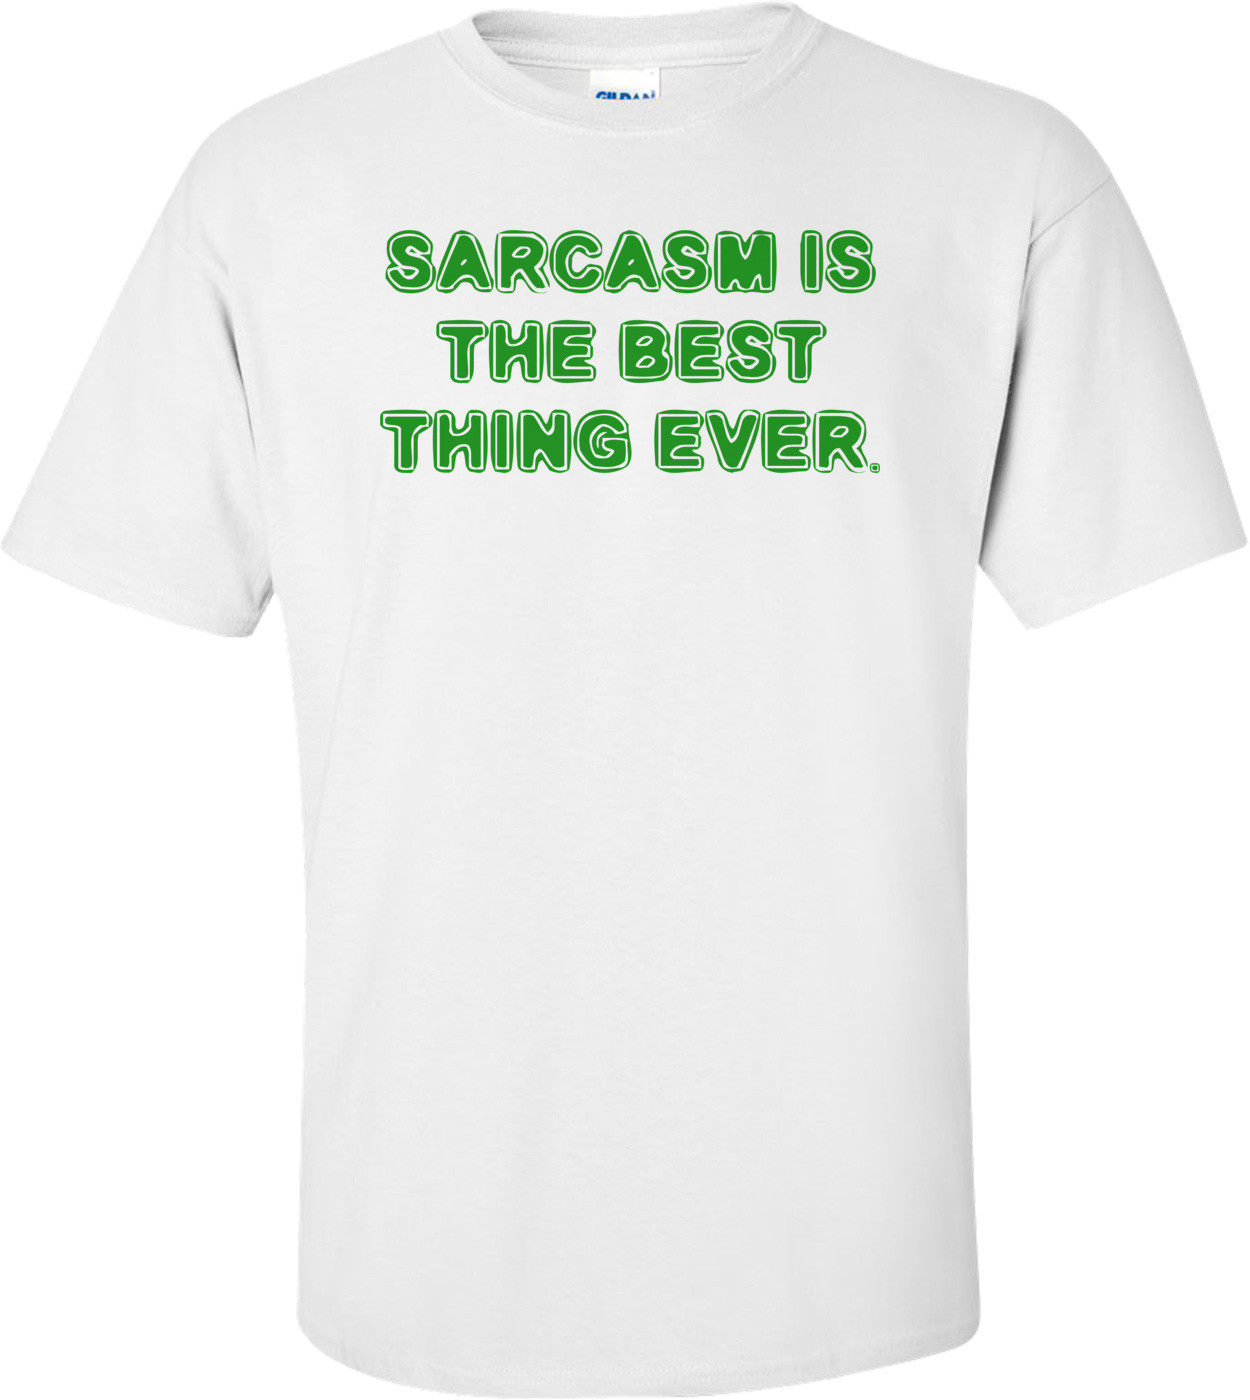 SARCASM IS THE BEST THING EVER. Shirt